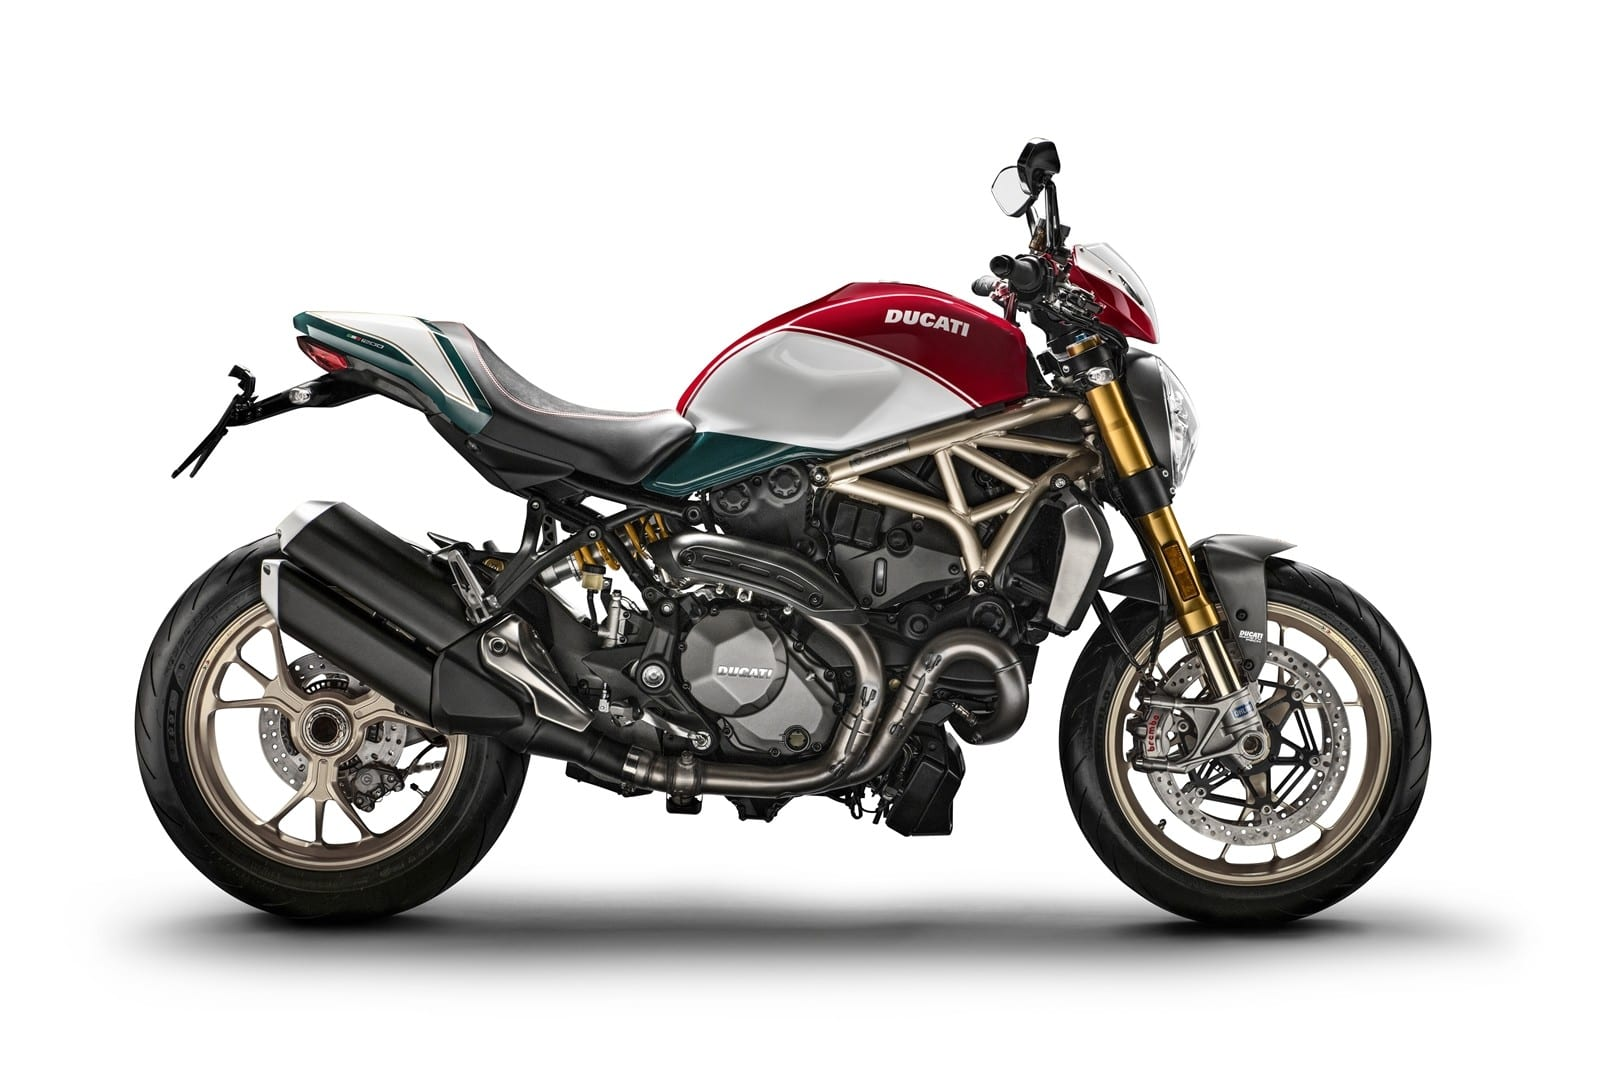 Street Fighter - 25 Years of the Ducati Monster